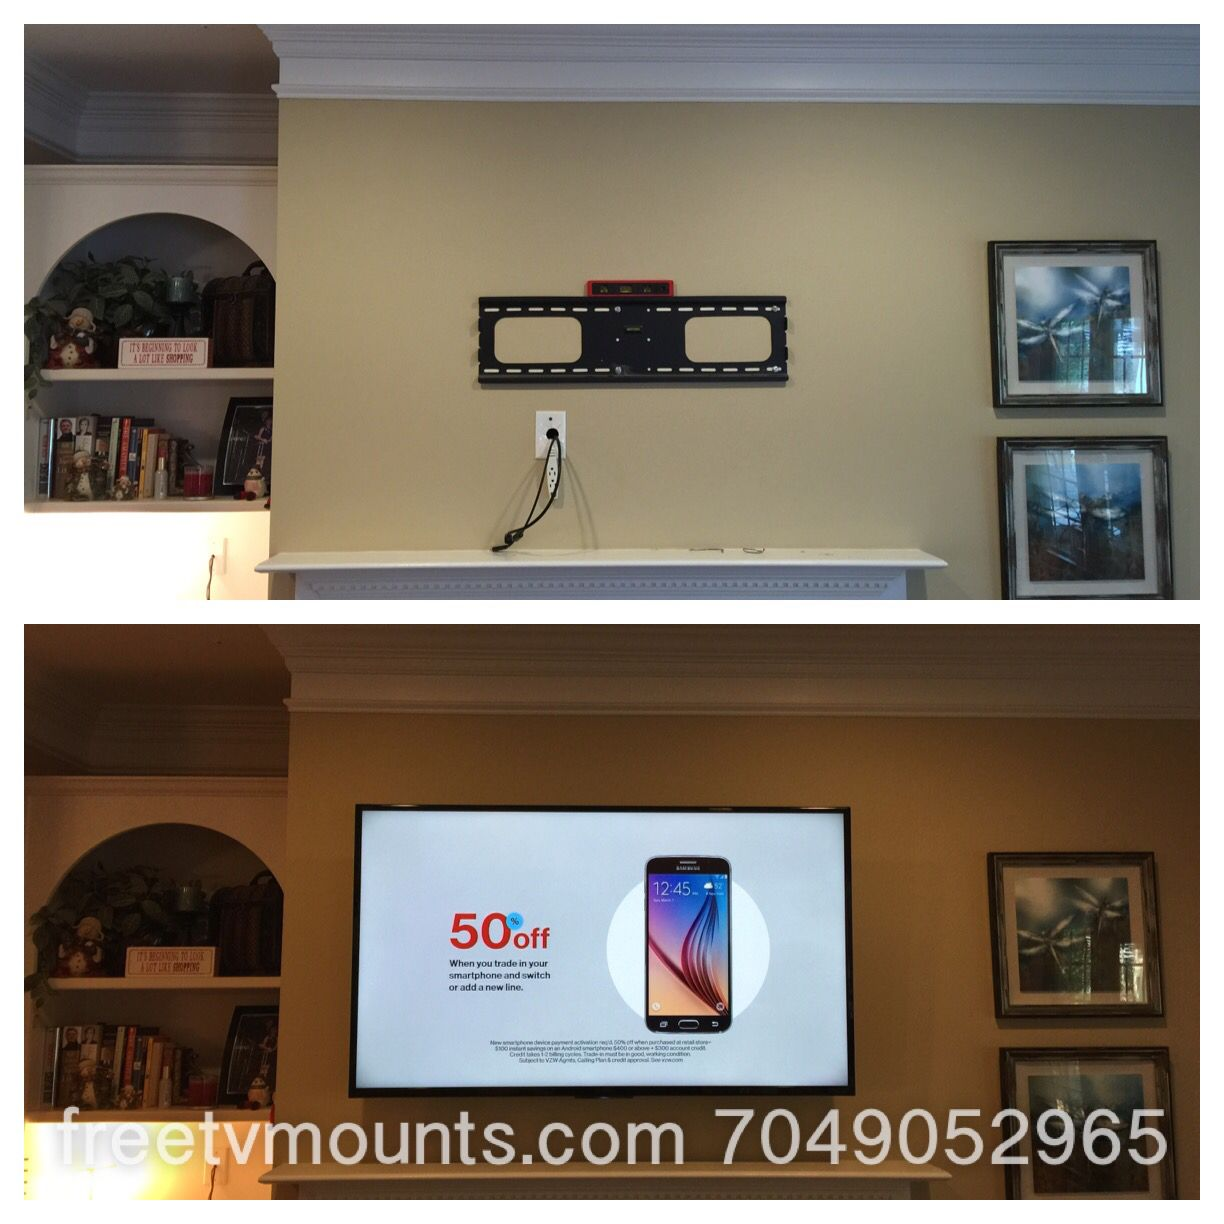 Professional TV wall mounting service Cheaper than Geek Squad ...